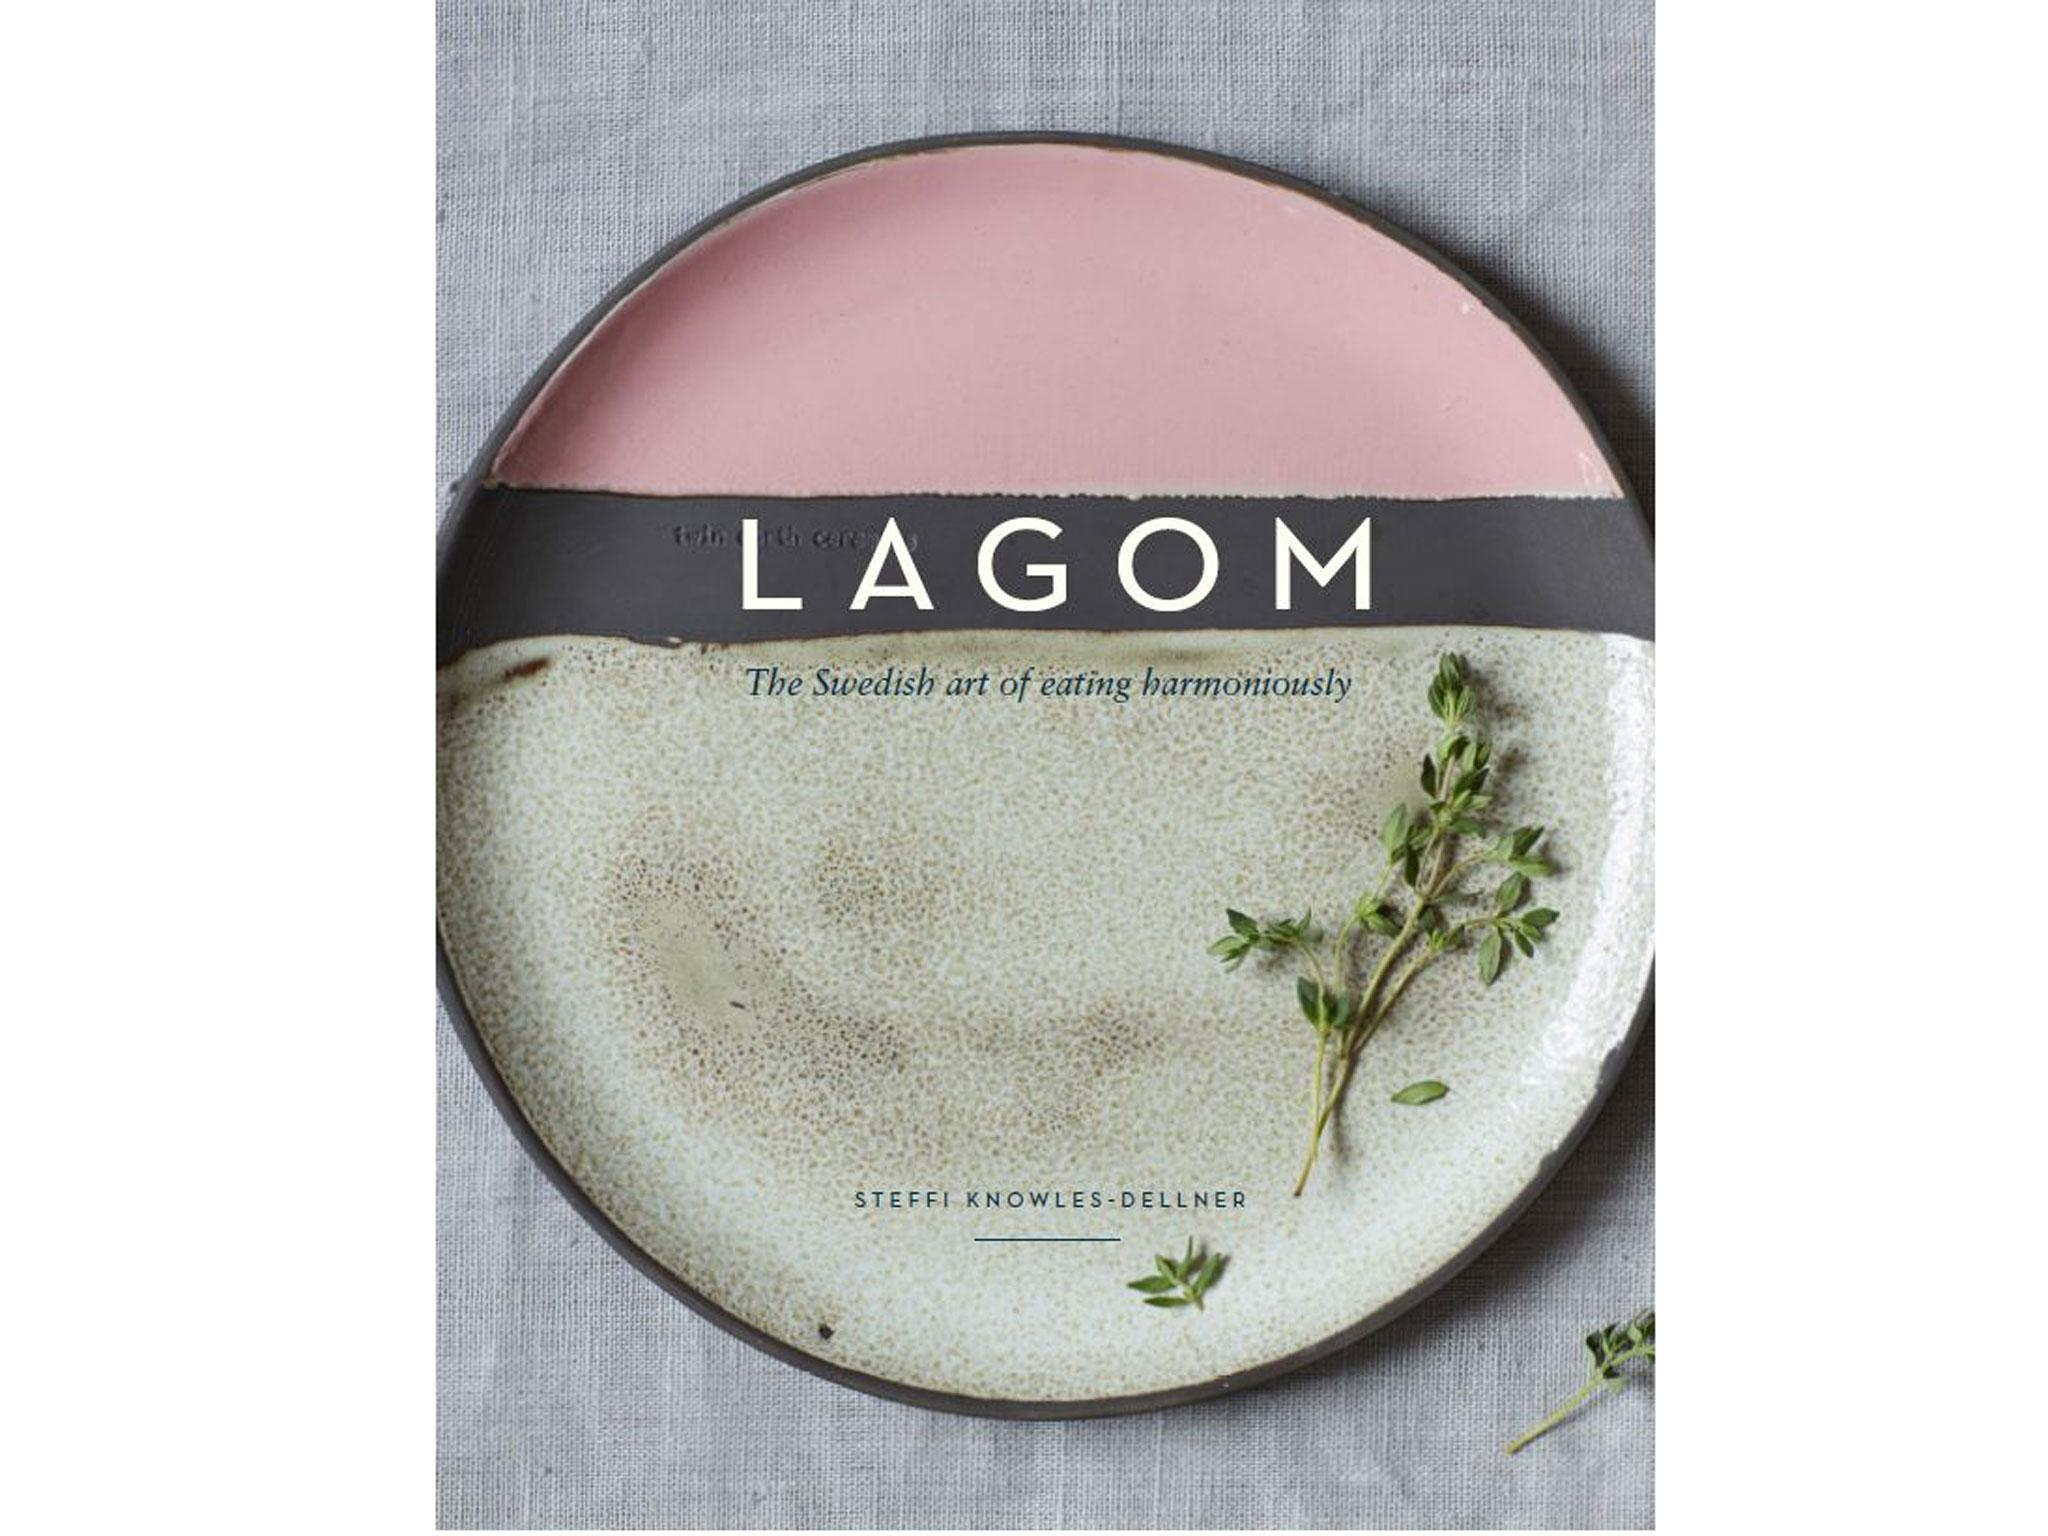 10 best scandinavian cookbooks the independent lagom you can count in alongside those other trendy scandi words hygge and fika is a swedish term loosely translated as just the right amount solutioingenieria Image collections